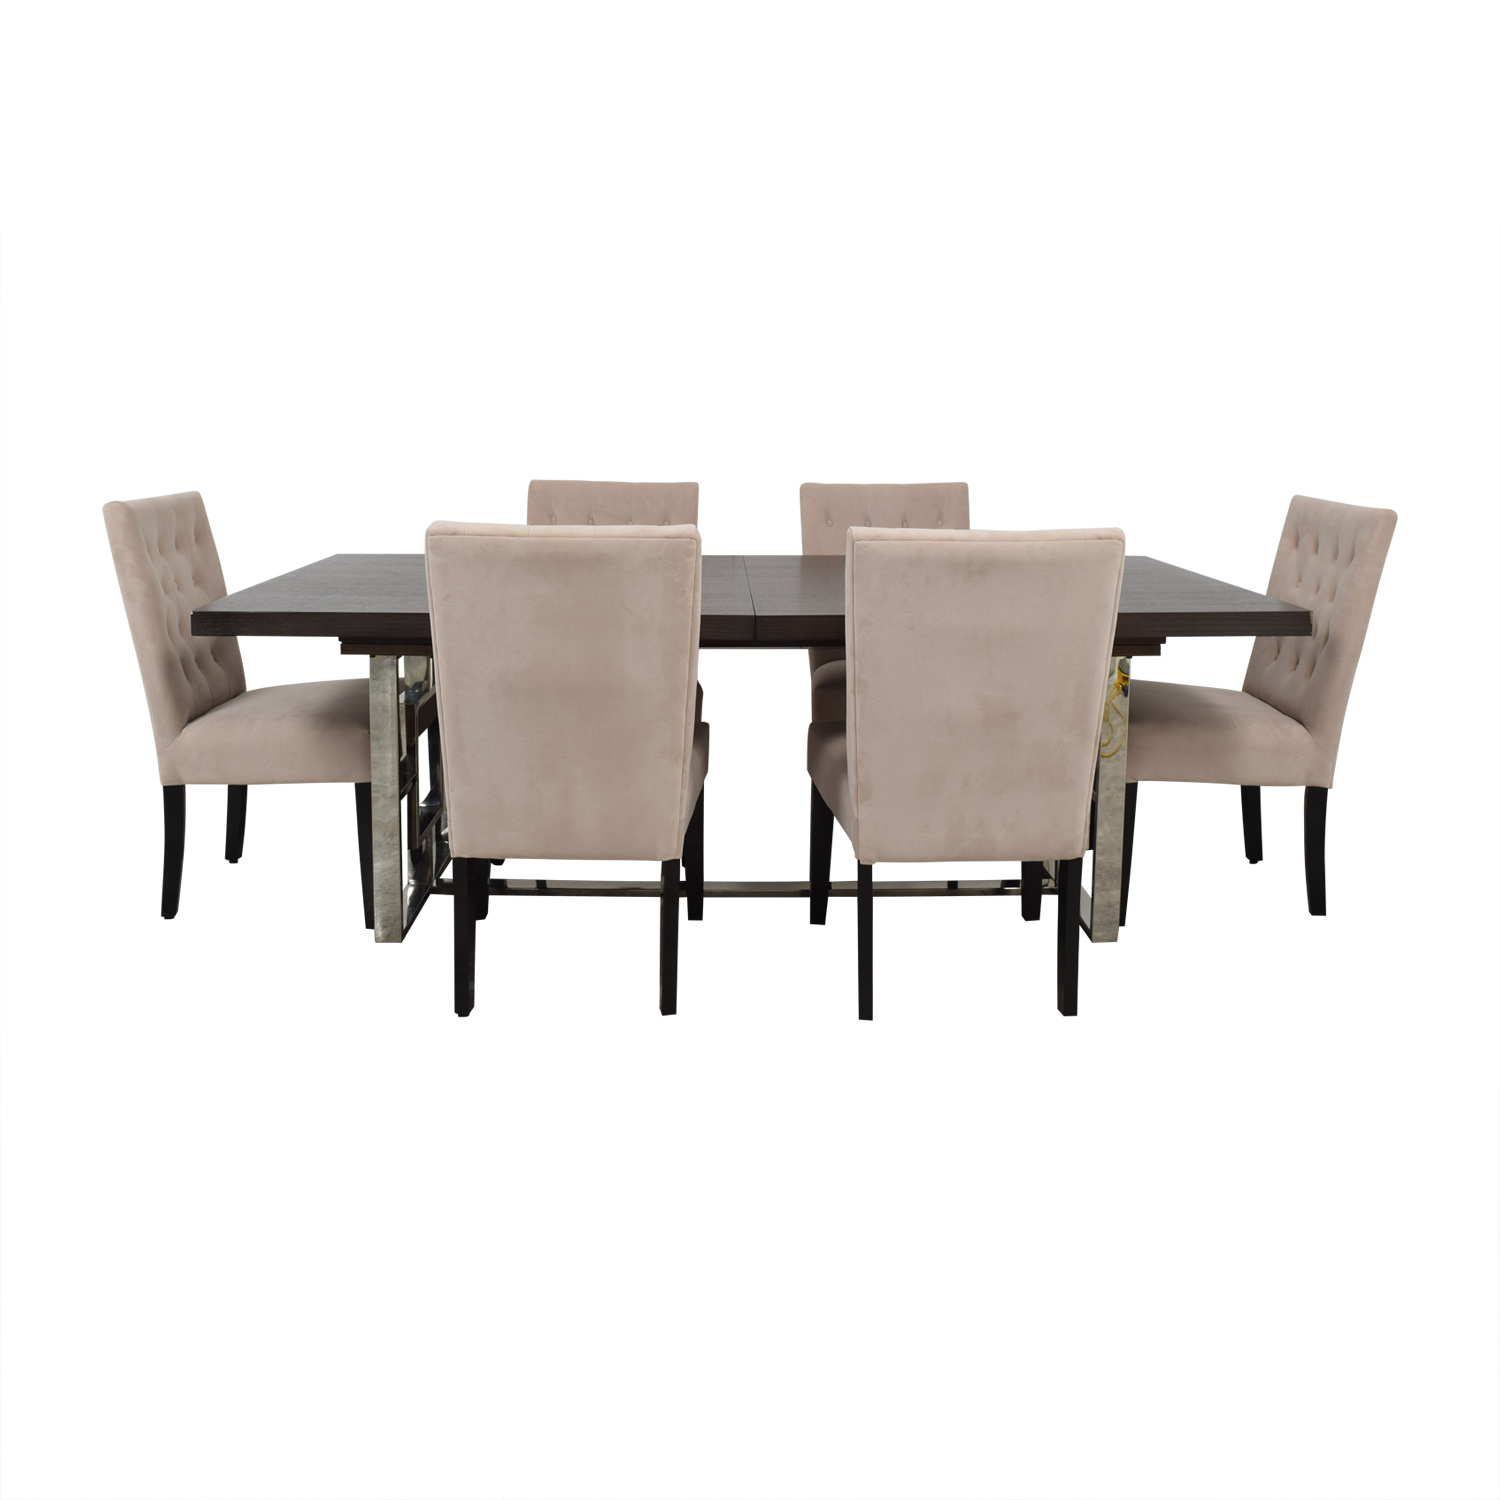 Z Gallerie Z Gallerie Rylan Extentable Dining Set with Beige Tufted Chairs